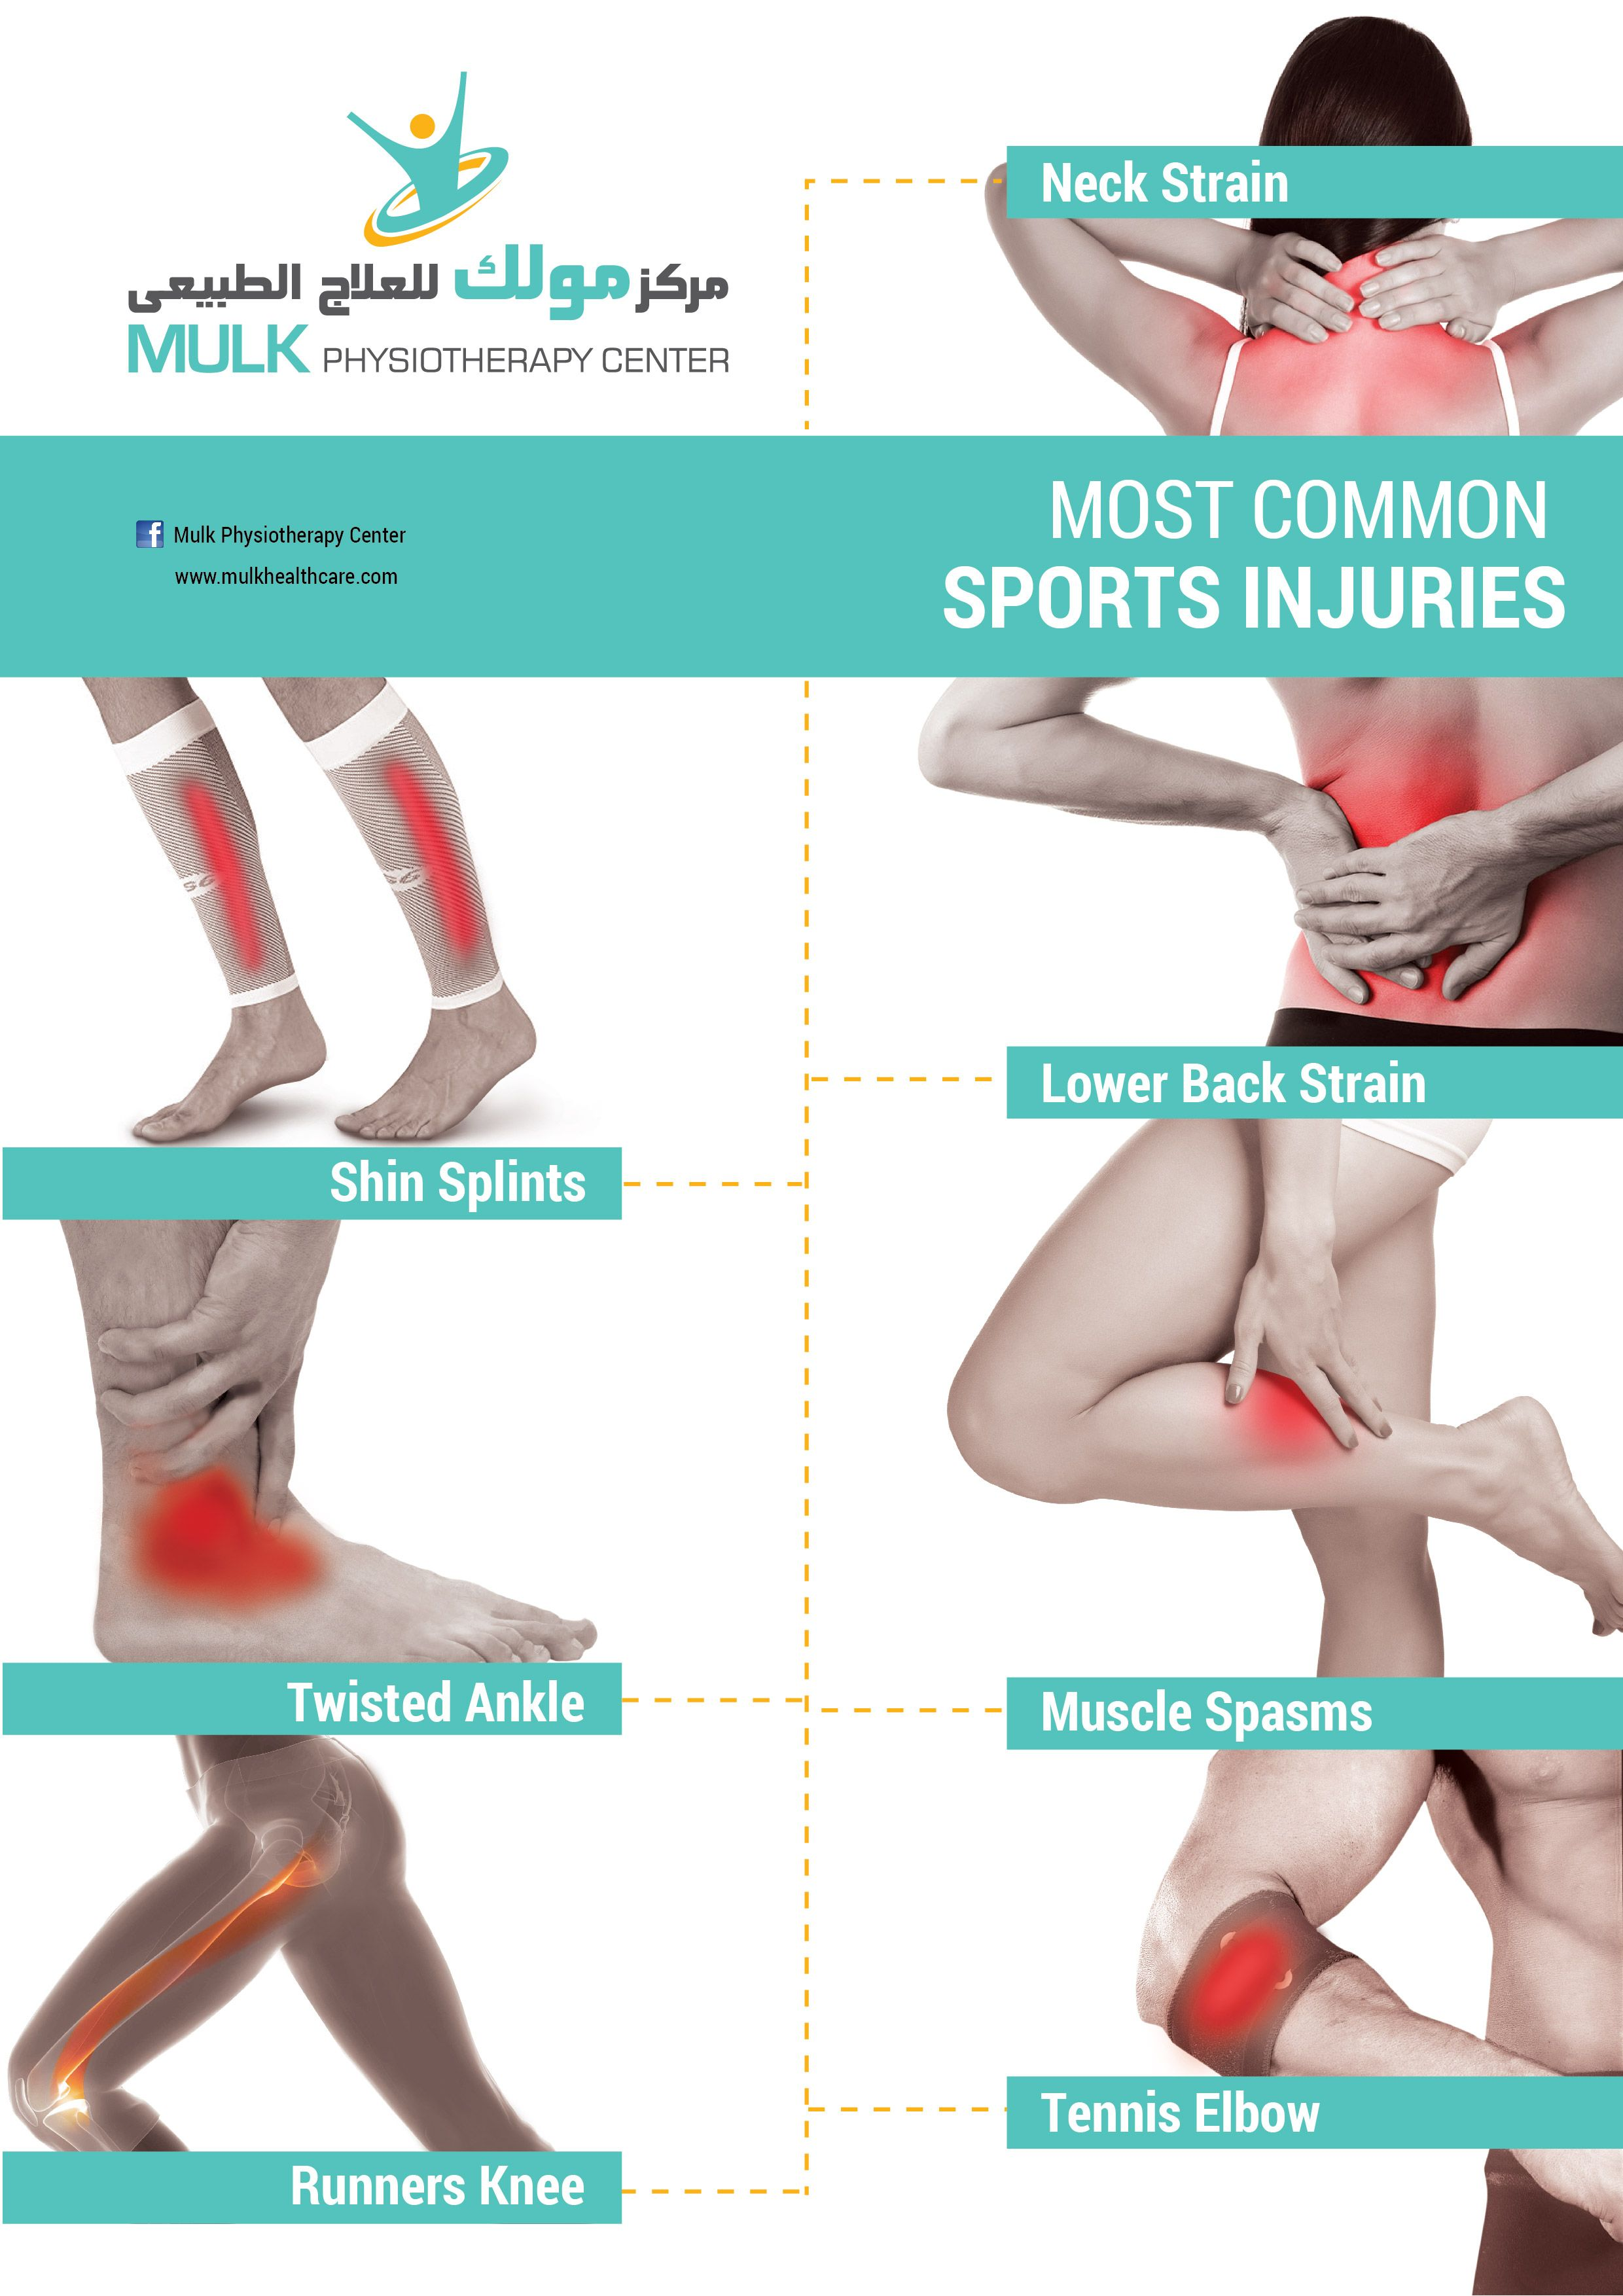 WE ARE THE SPECIALIST IN SPORTS INJURIES...Mulk